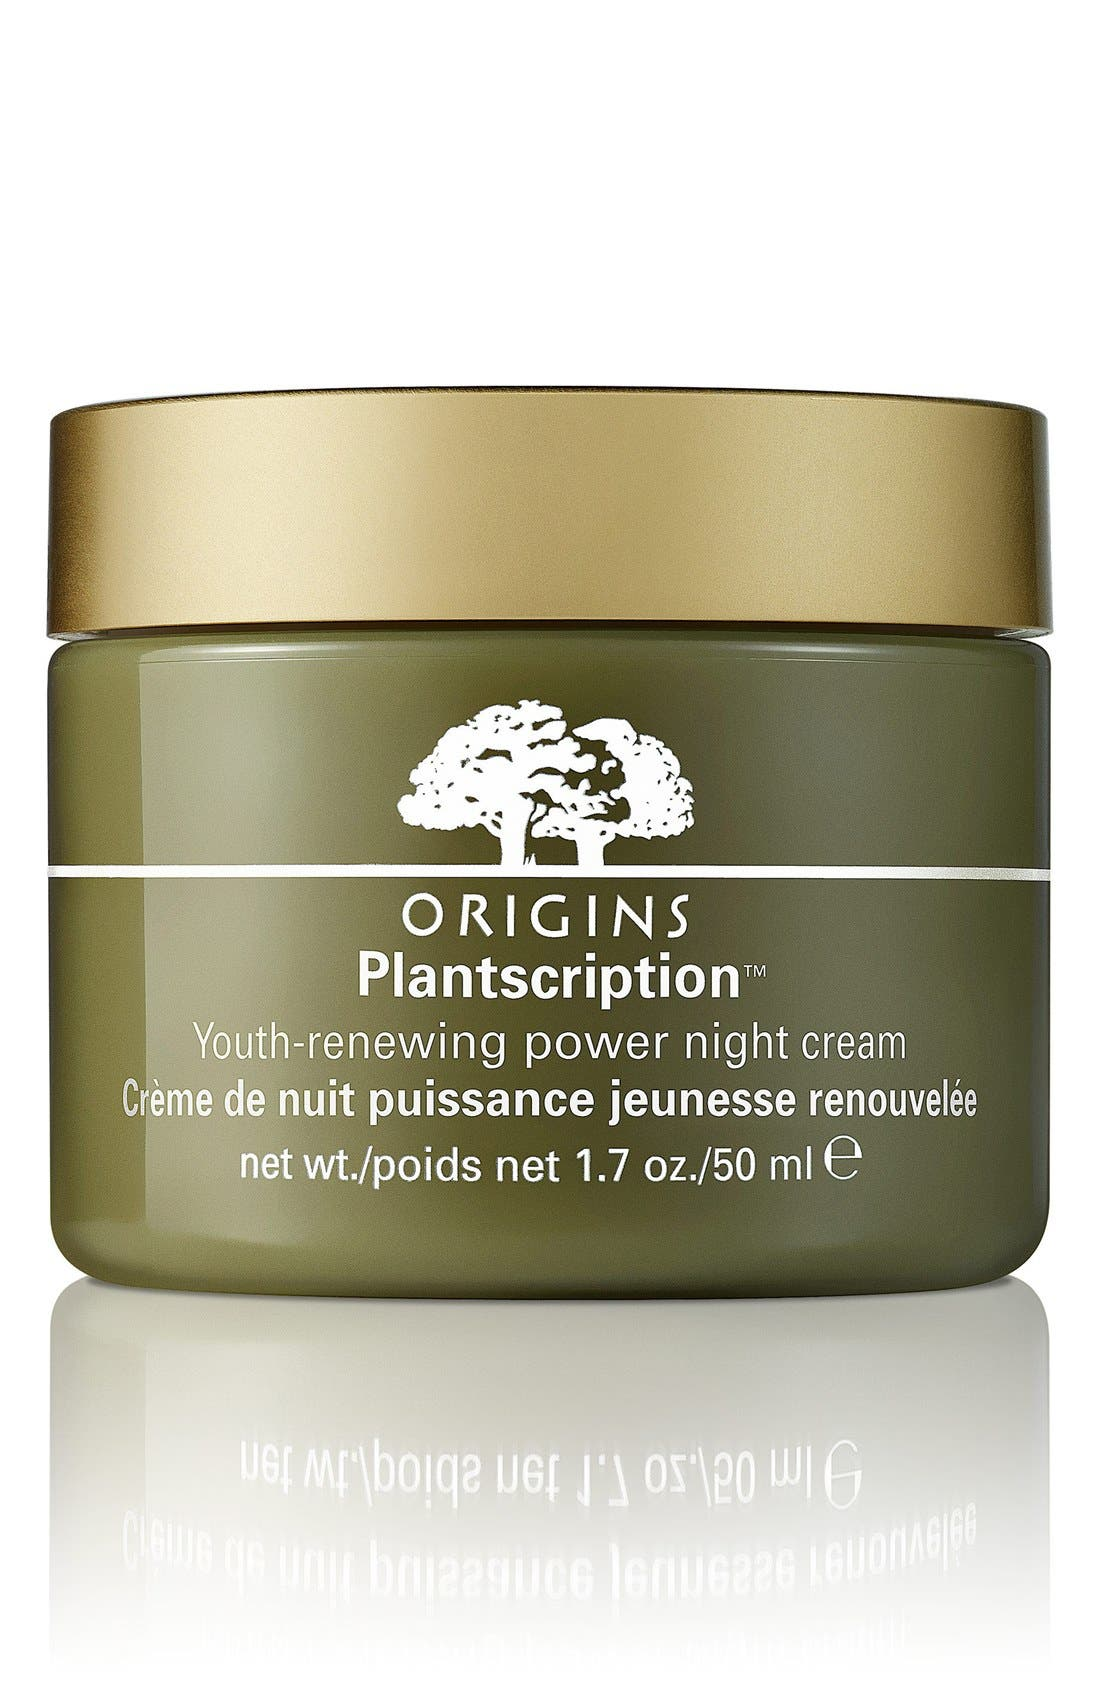 Origins Plantscriptions™ Youth-Renewing Power Night Cream